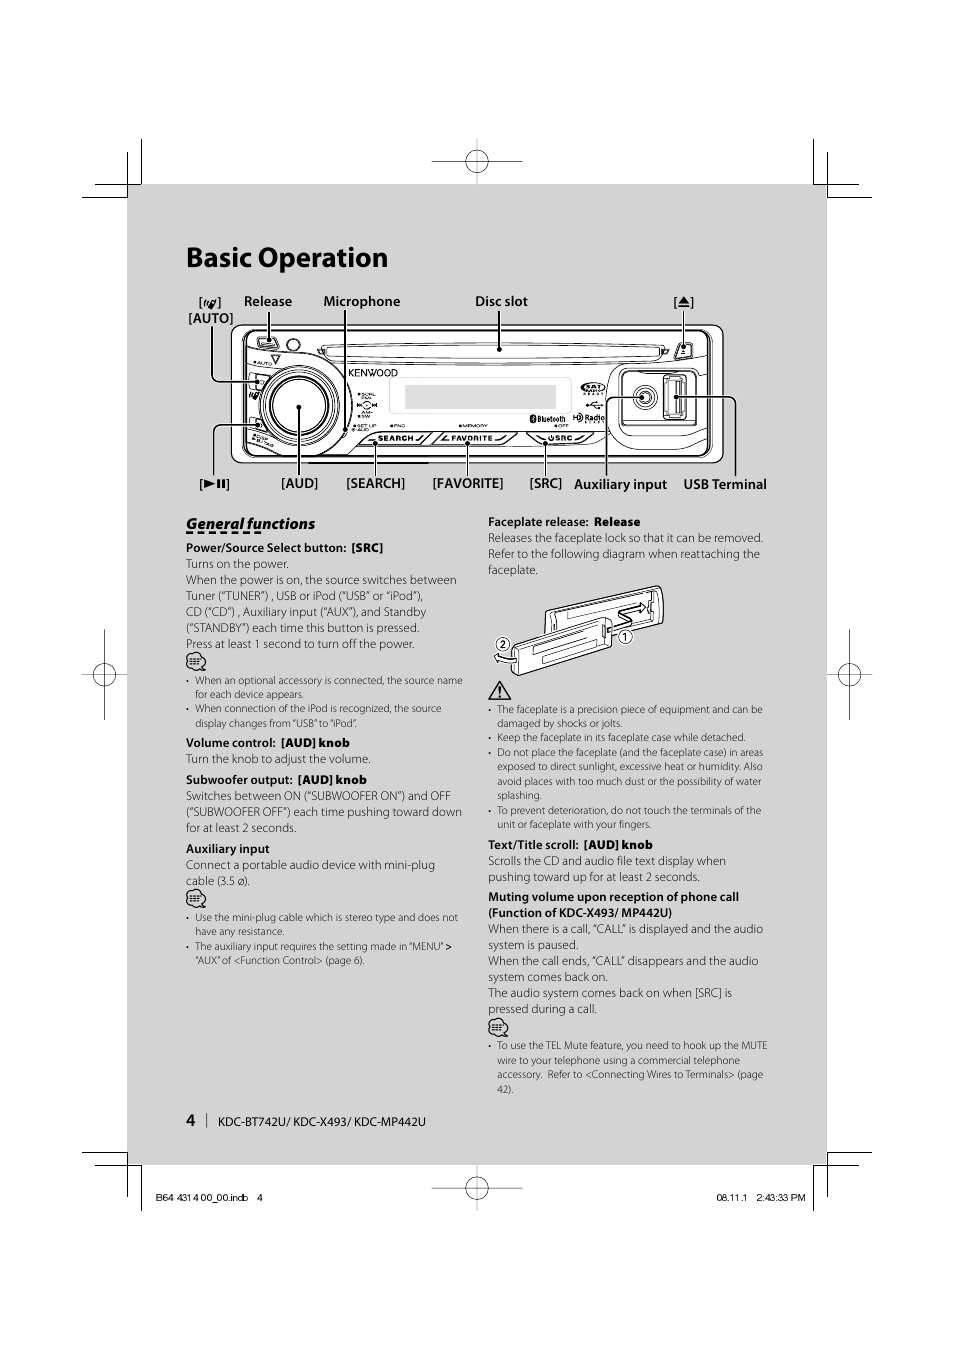 Basic operation | Kenwood KDC-BT742U User Manual | Page 4 / 140